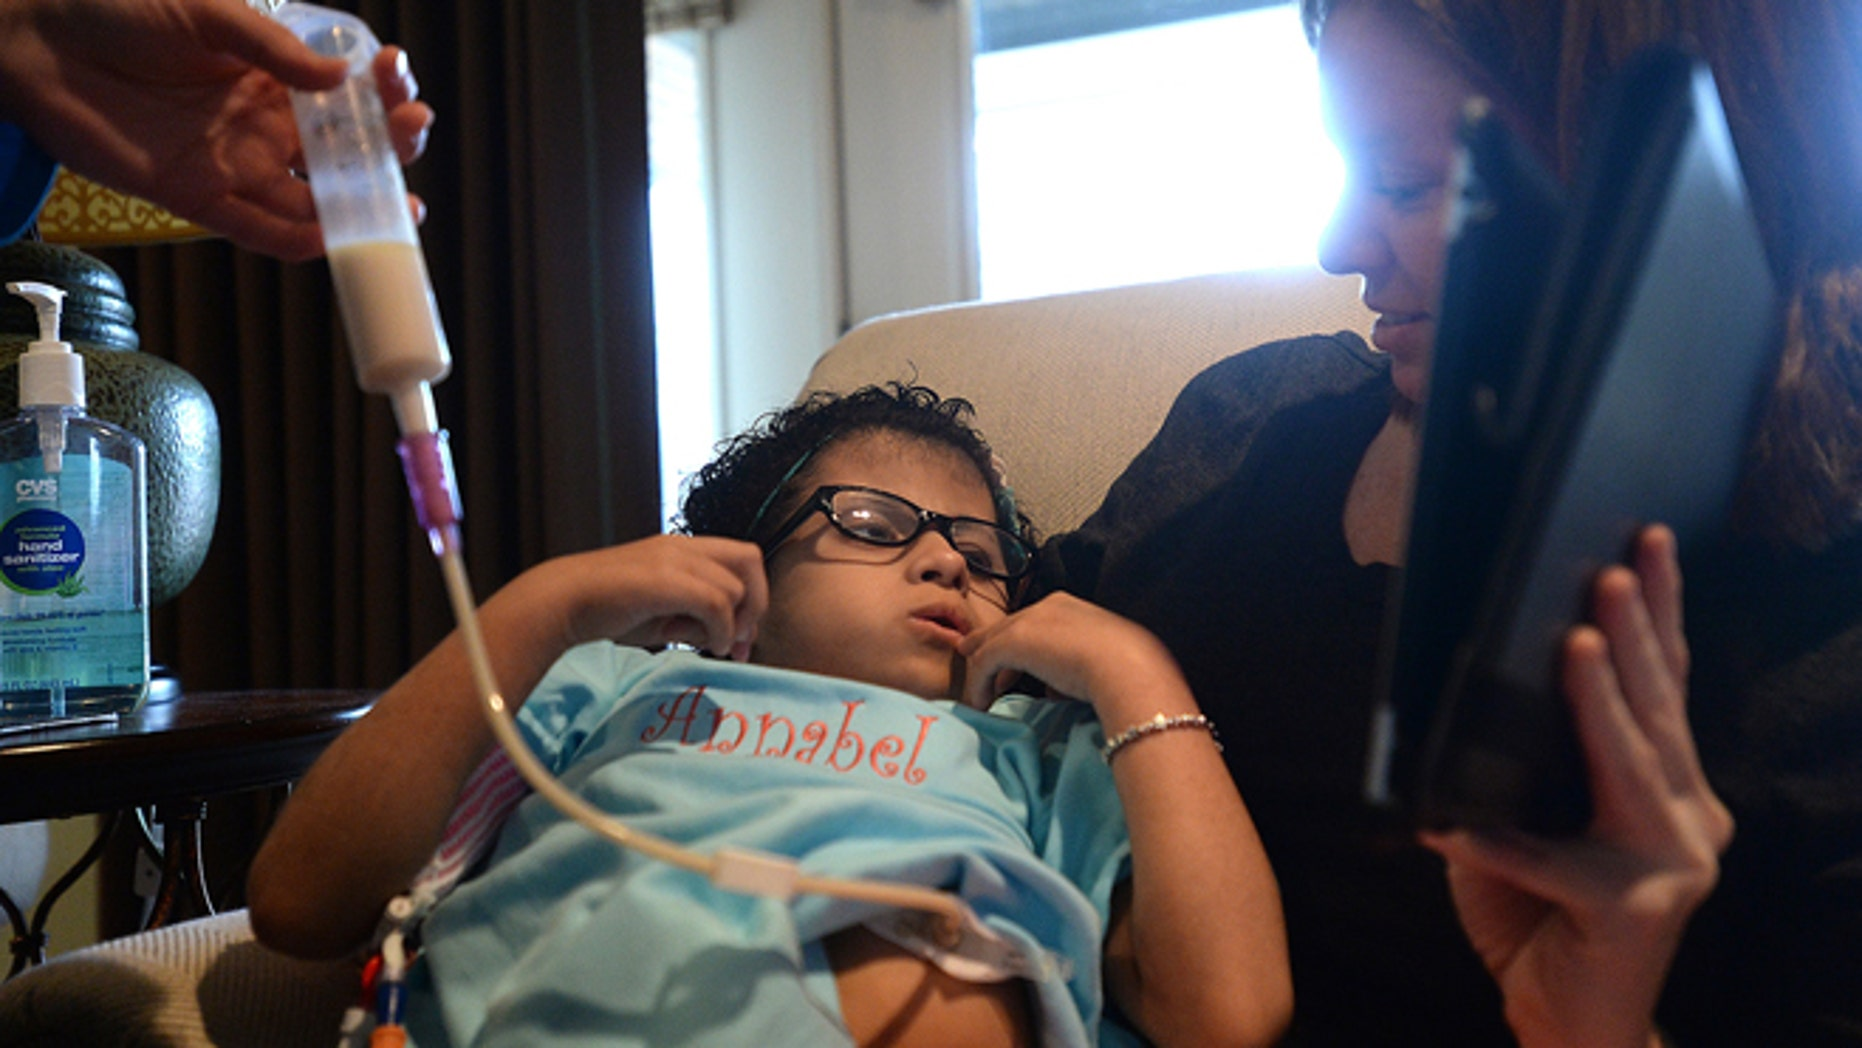 Annabel Shelander watches an episode of Barney with older sister Tara as nurse aide Megan Goats gives her a feeding through her peg tube at the family's home in Beaumont, Texas, on Saturday, Feb. 14, 2015.  Shelander, 9, has a rare condition that keeps her from consuming and digesting food naturally.  (AP Photo/The Beaumont Enterprise, Kim Brent)